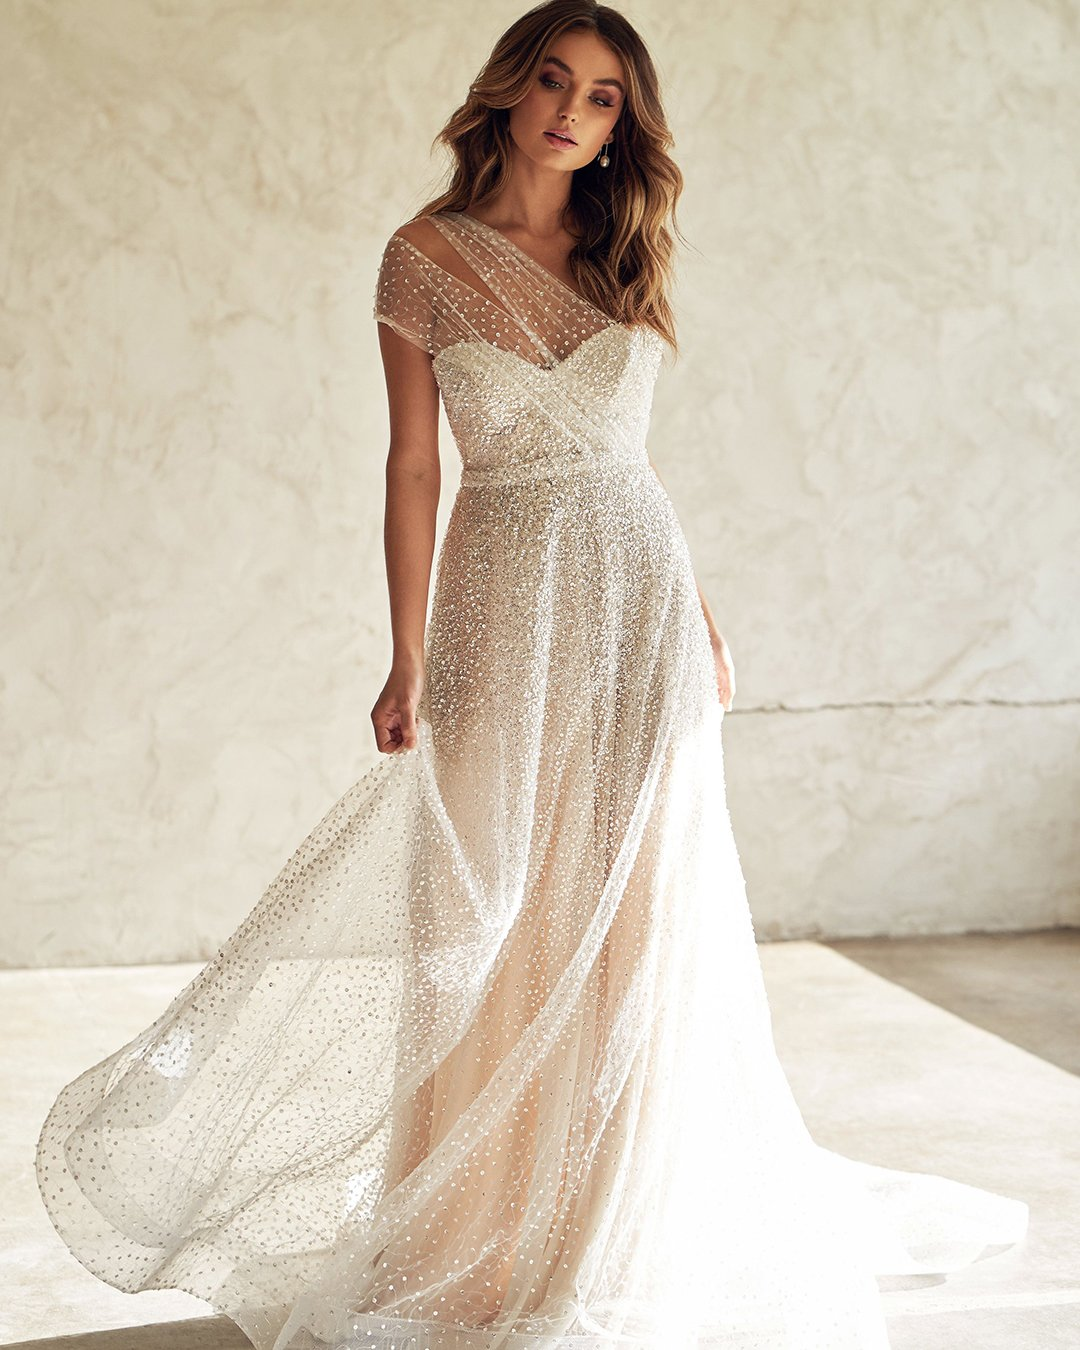 best wedding dresses a line sweetheart neckline sequins anna campbell